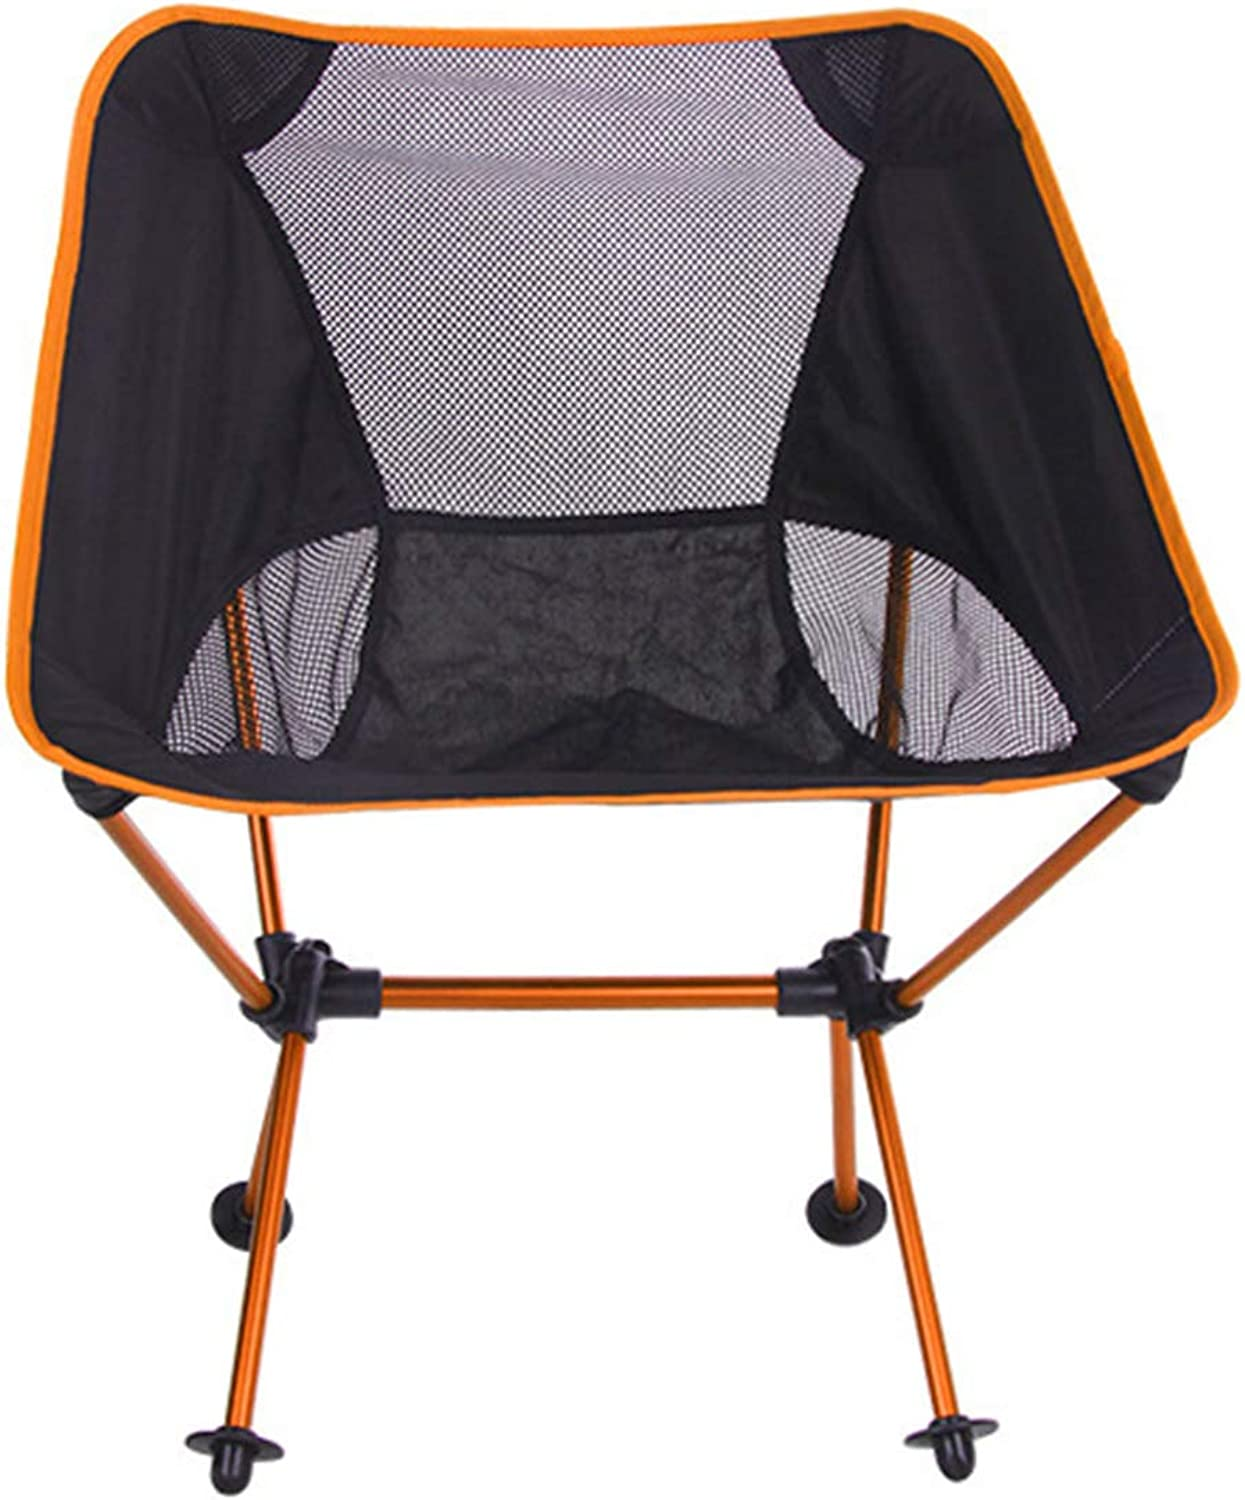 GuoBomatealliance Camping Camping Factory Outdoor Portable Folding Camping Chair Light Fishing Beach Chair Aviation Aluminum Alloy Backrest Recliner